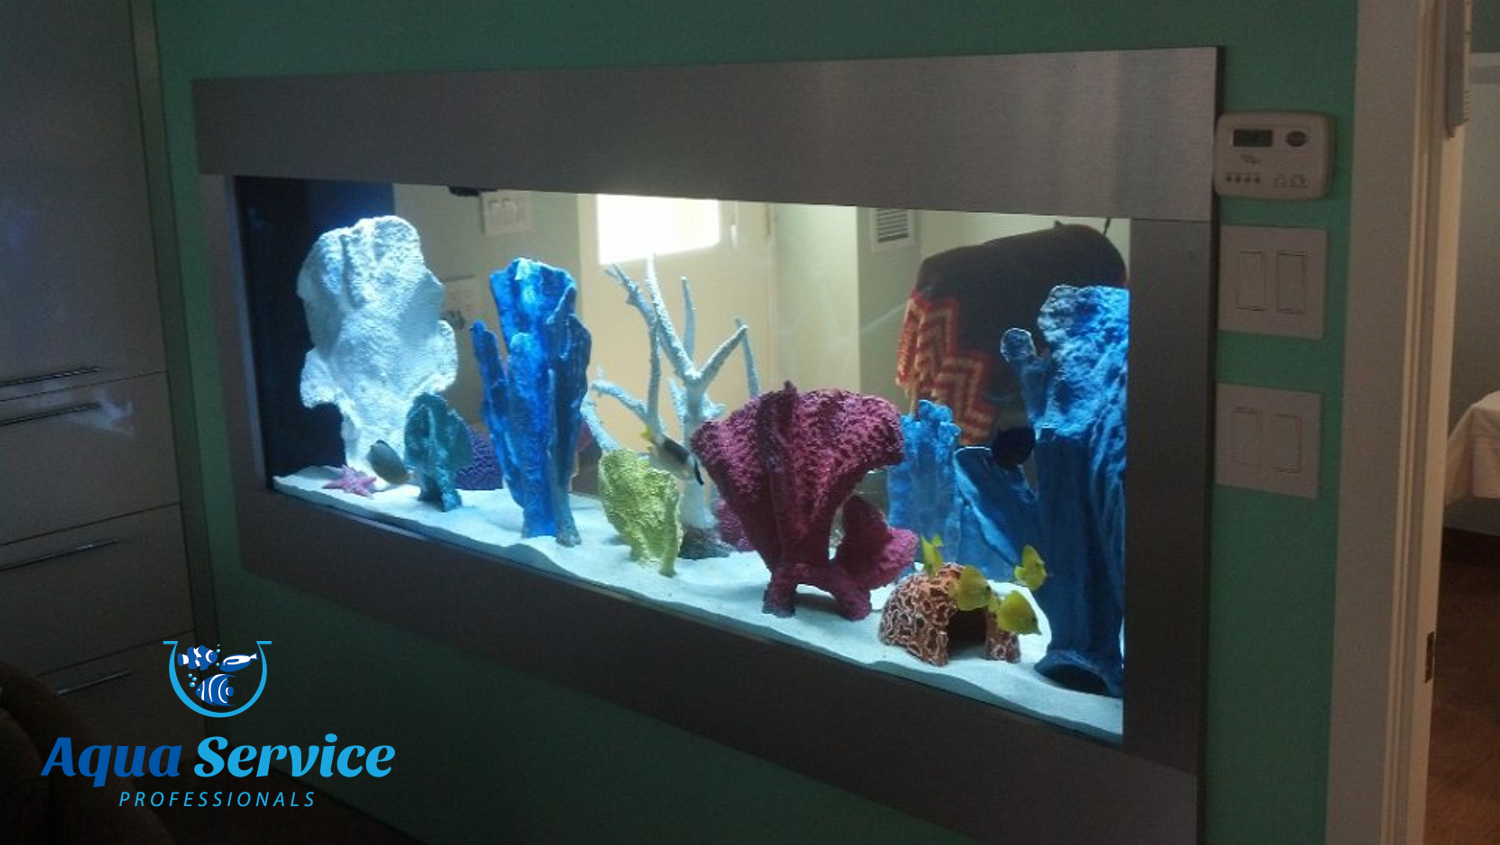 Fish tank cleaning service -  Maintenance Nj Wa Aquarium Makeover Aqua Service Professionals